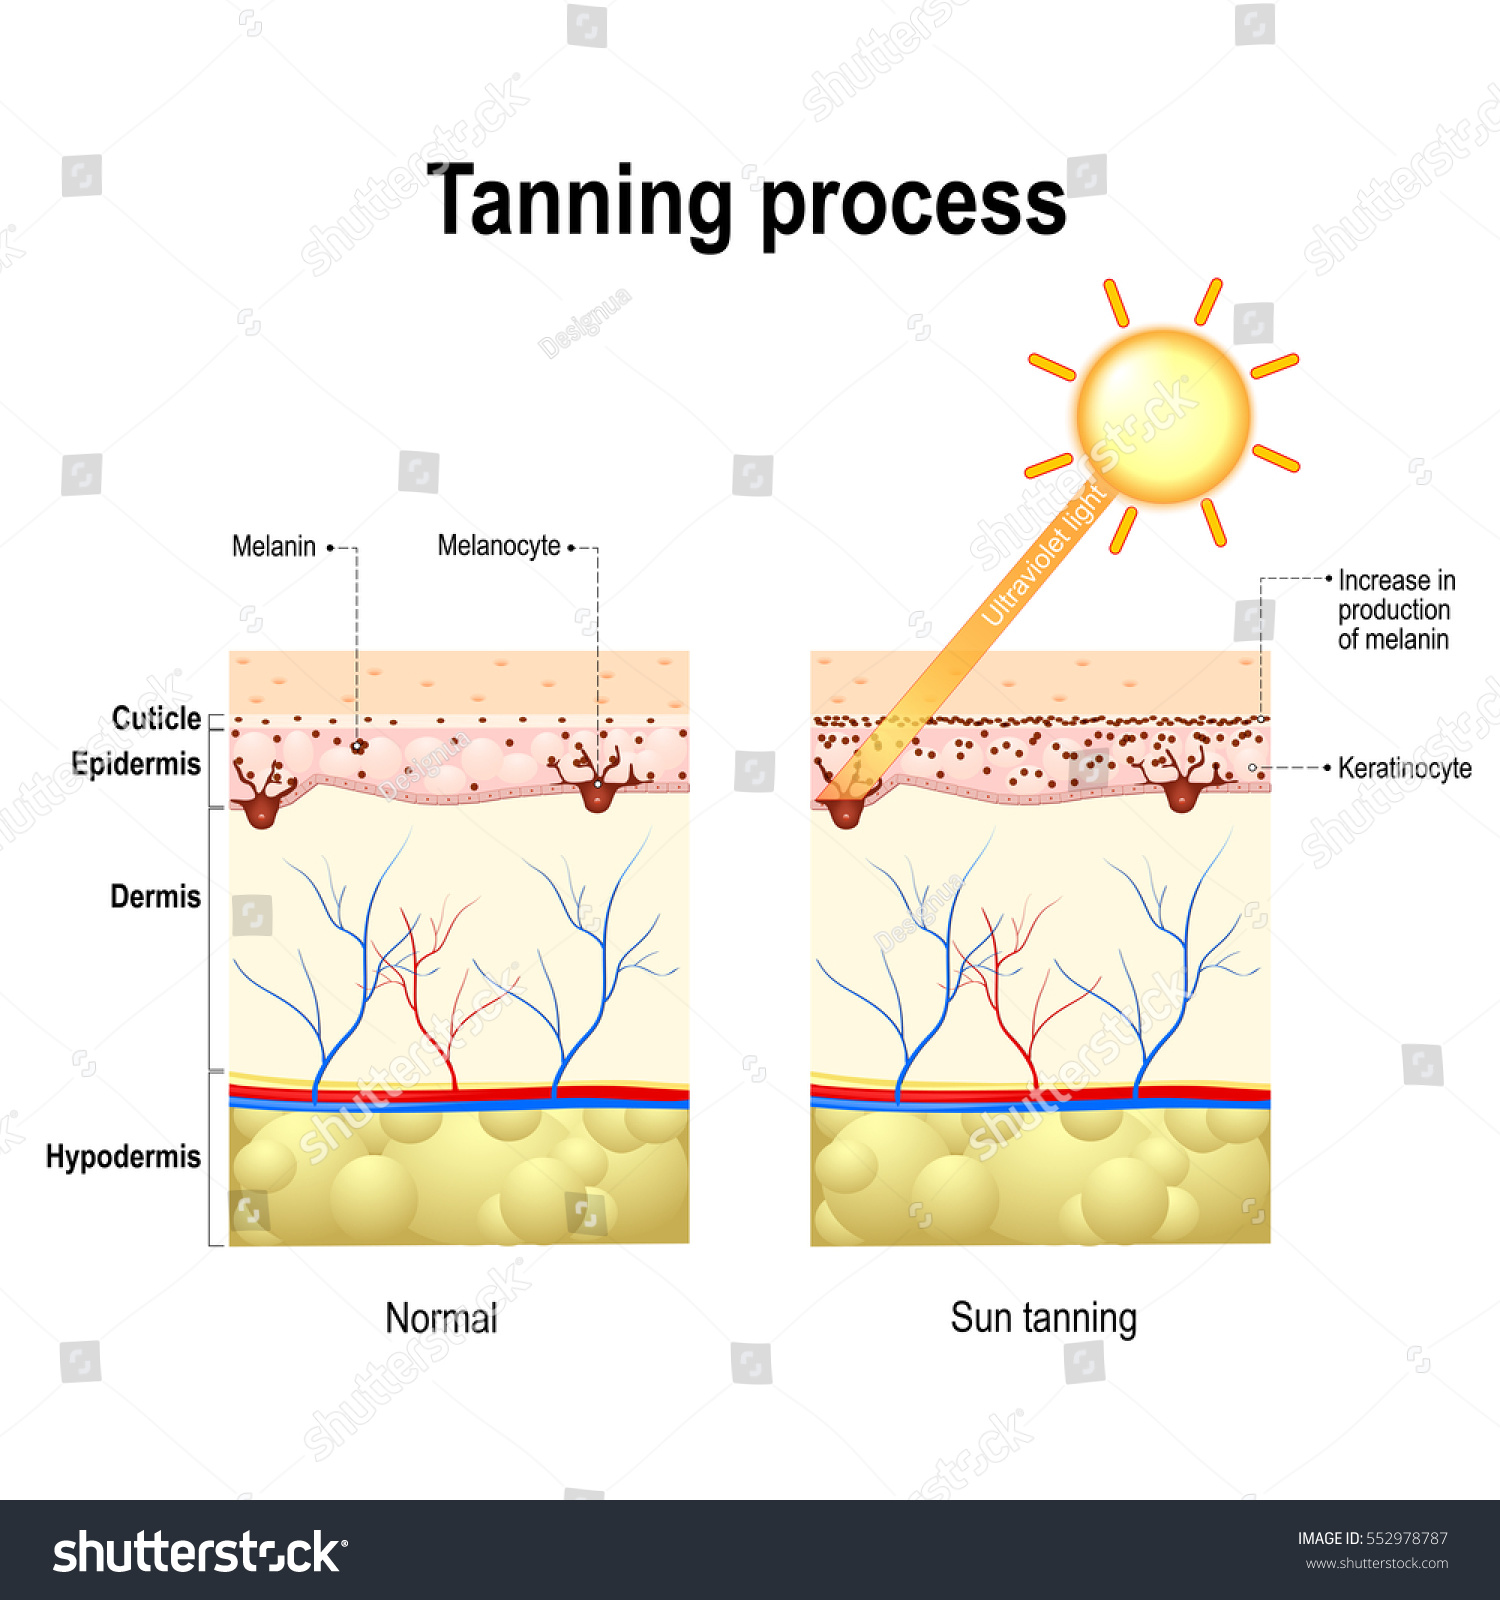 When Ultraviolet Light Waves Touch Melanocytes They Begin To Increase The Production